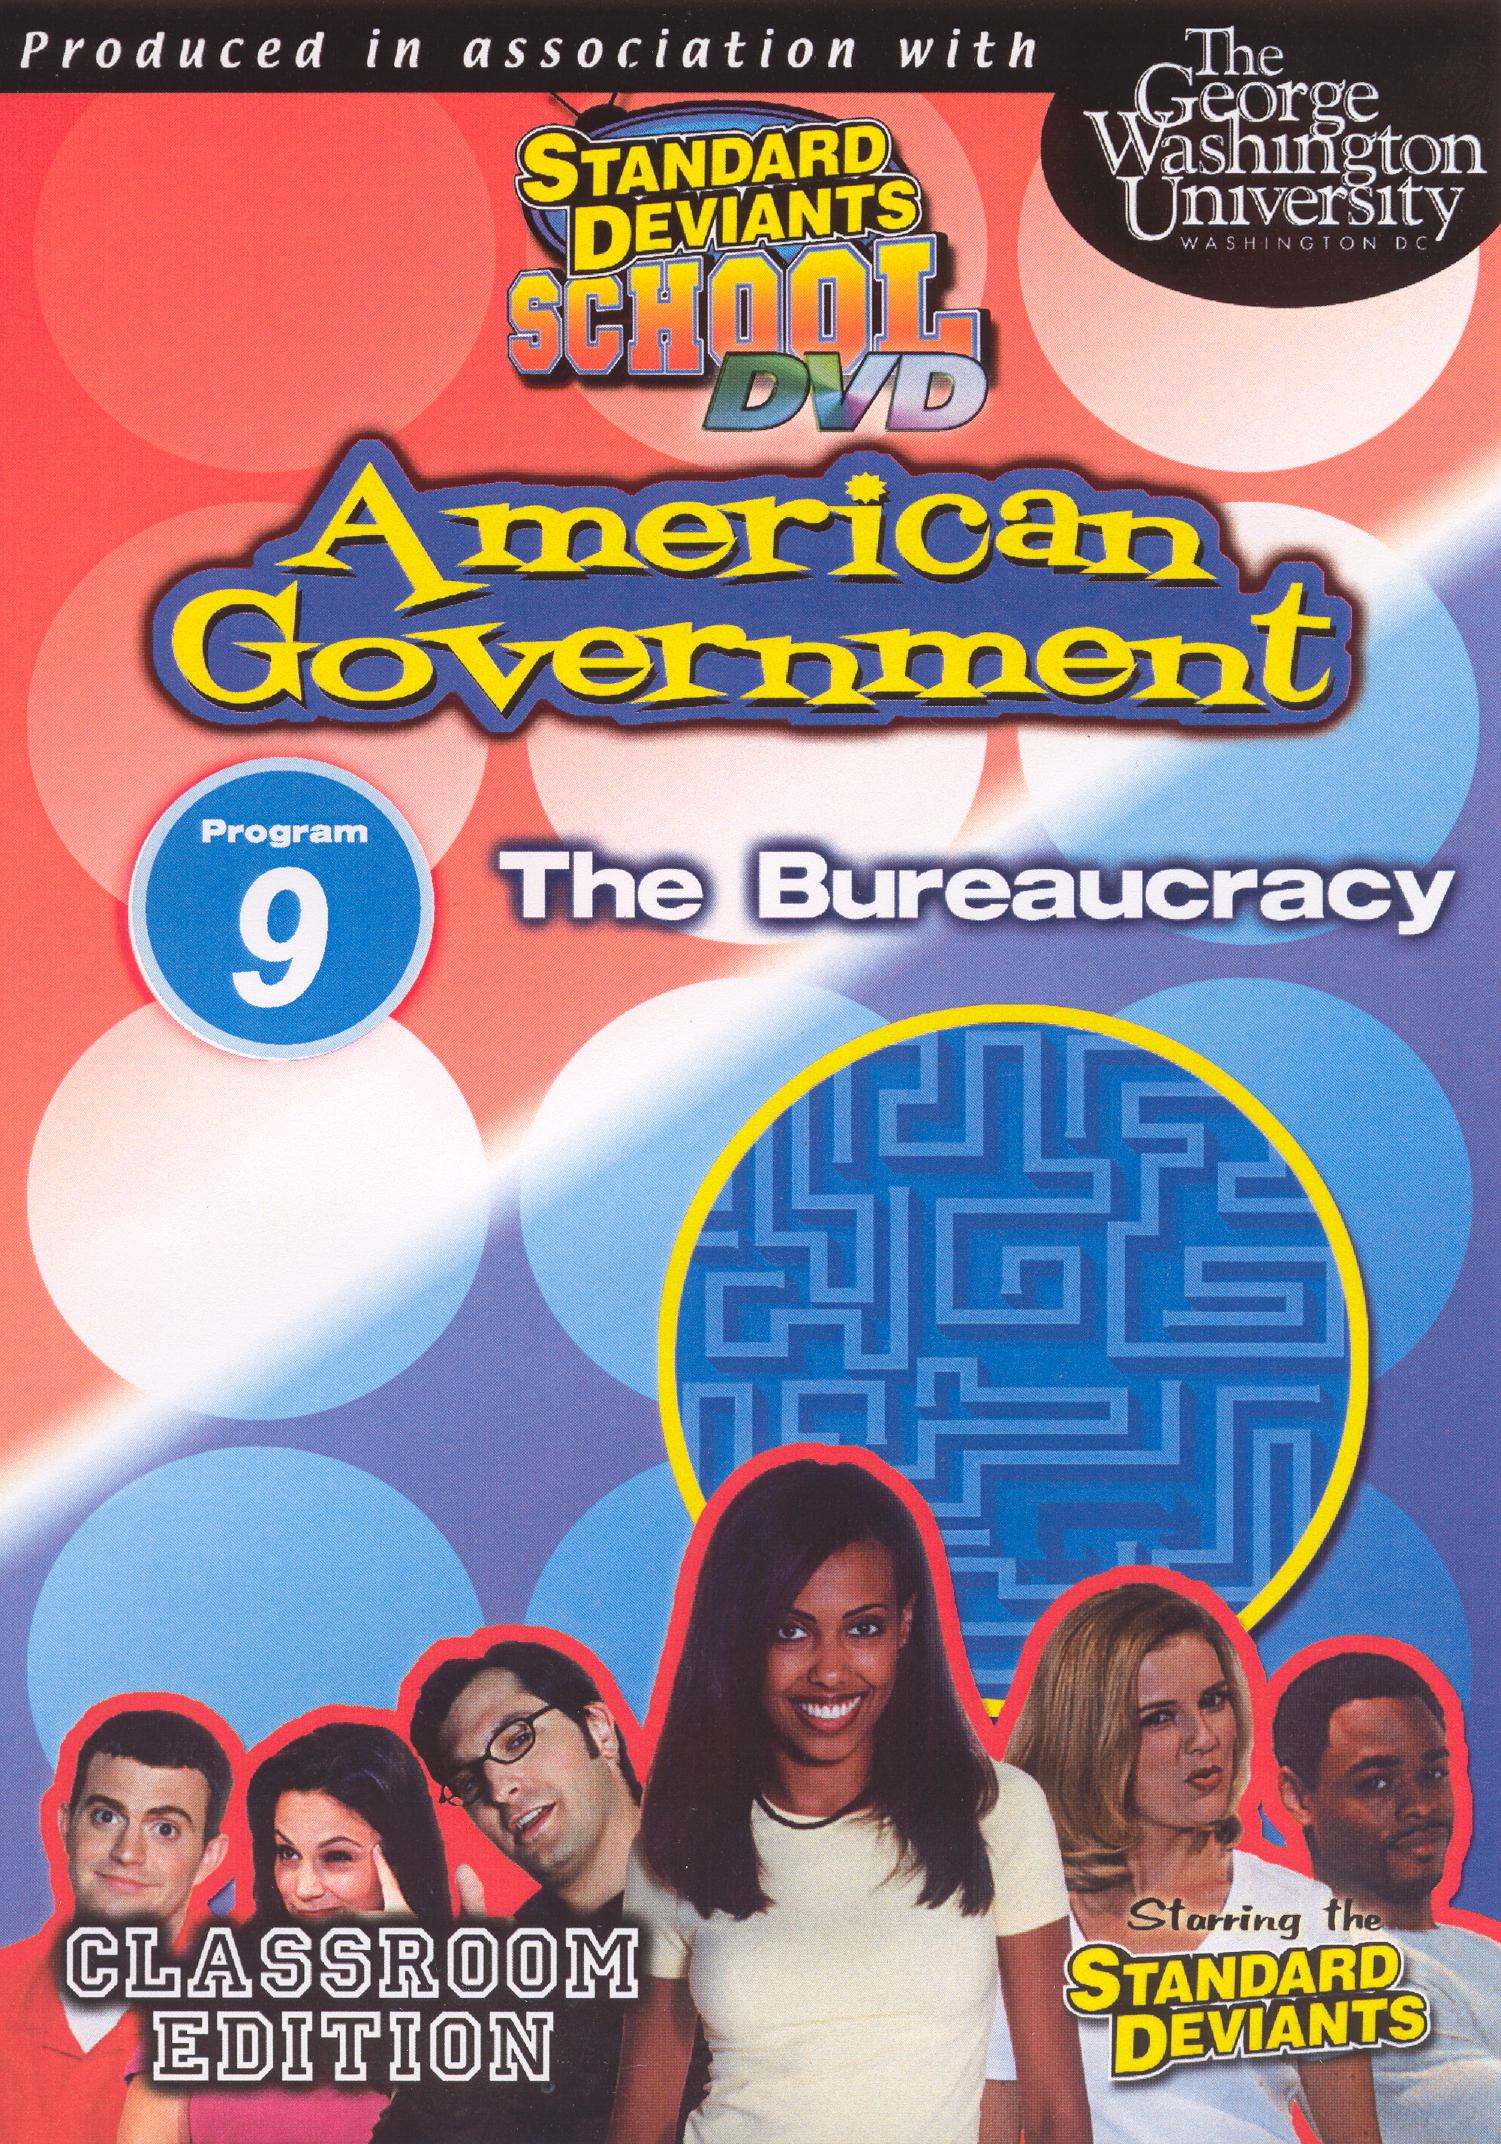 Standard Deviants School: American Government, Module 9 - The Bureaucracy